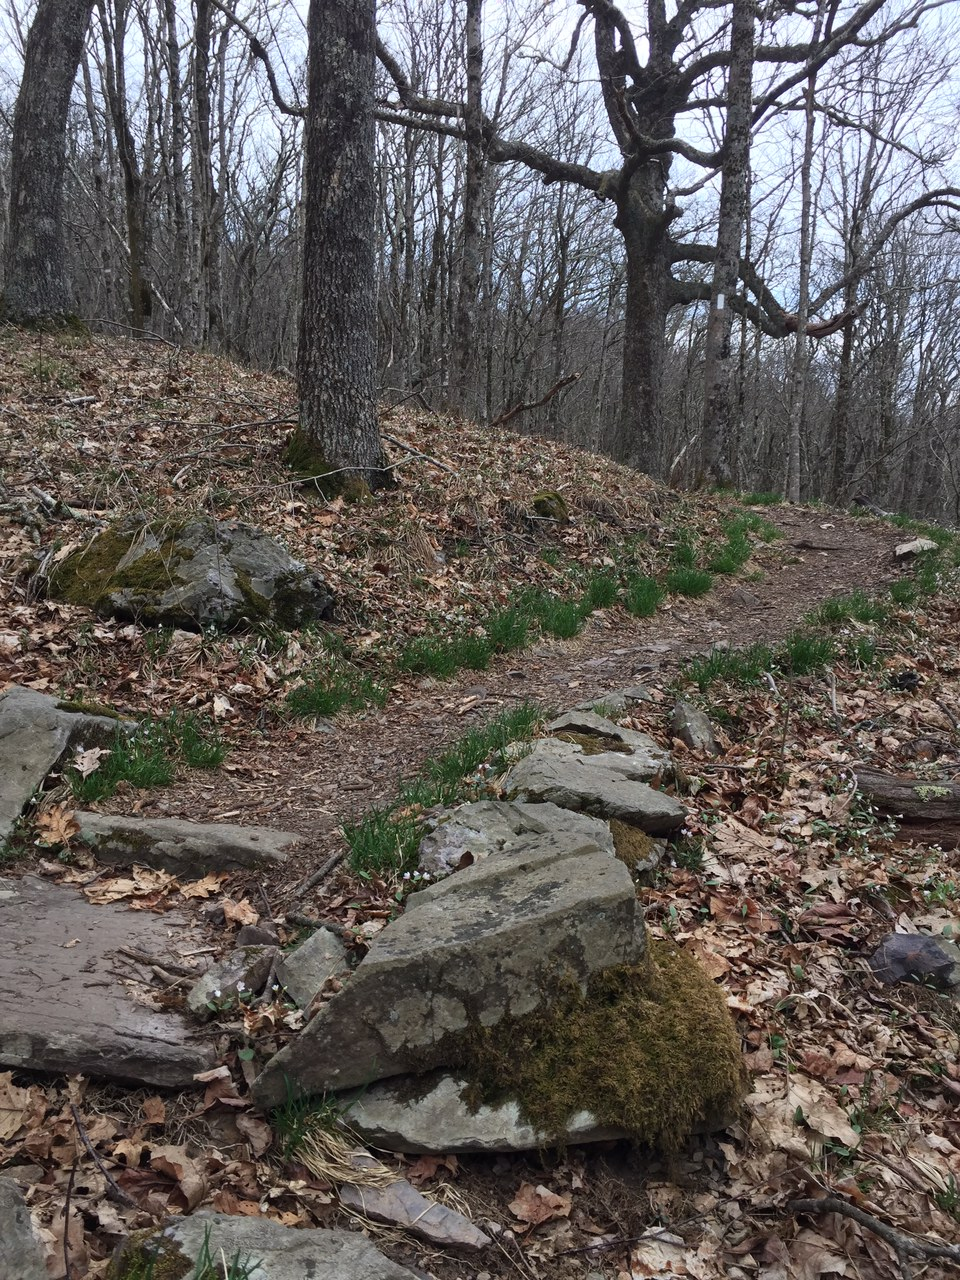 Appalachian Trail through the woods